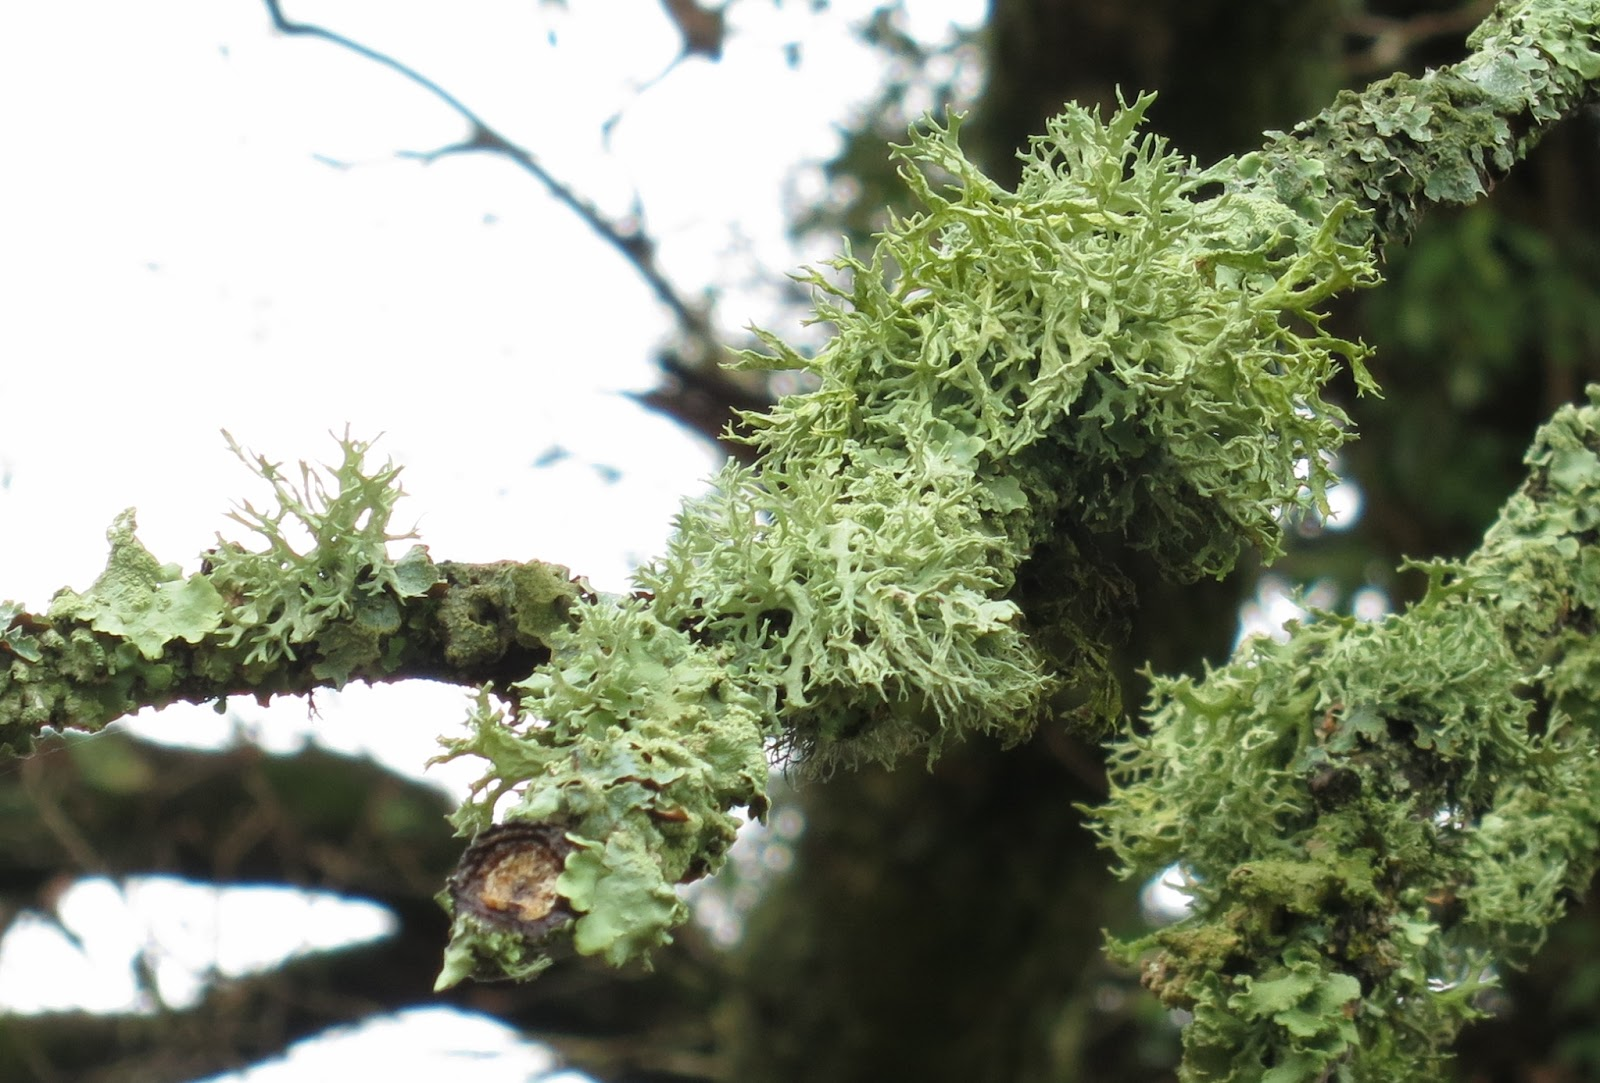 Feathery lichen on tree in the New Forest, Hampshire.